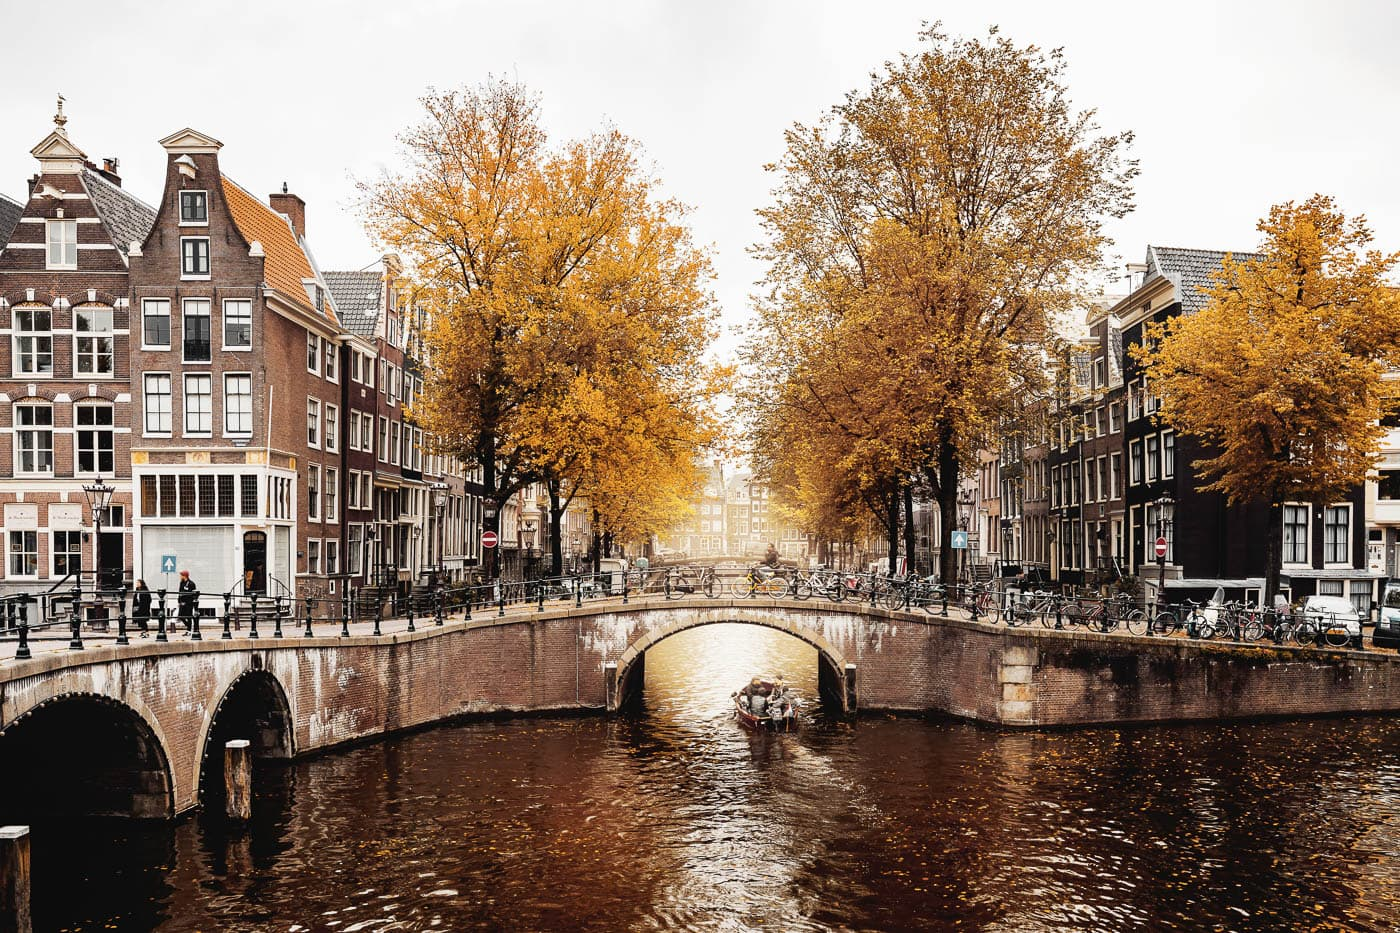 Autumn in the Keizersgracht in Amsterdam, Netherlands